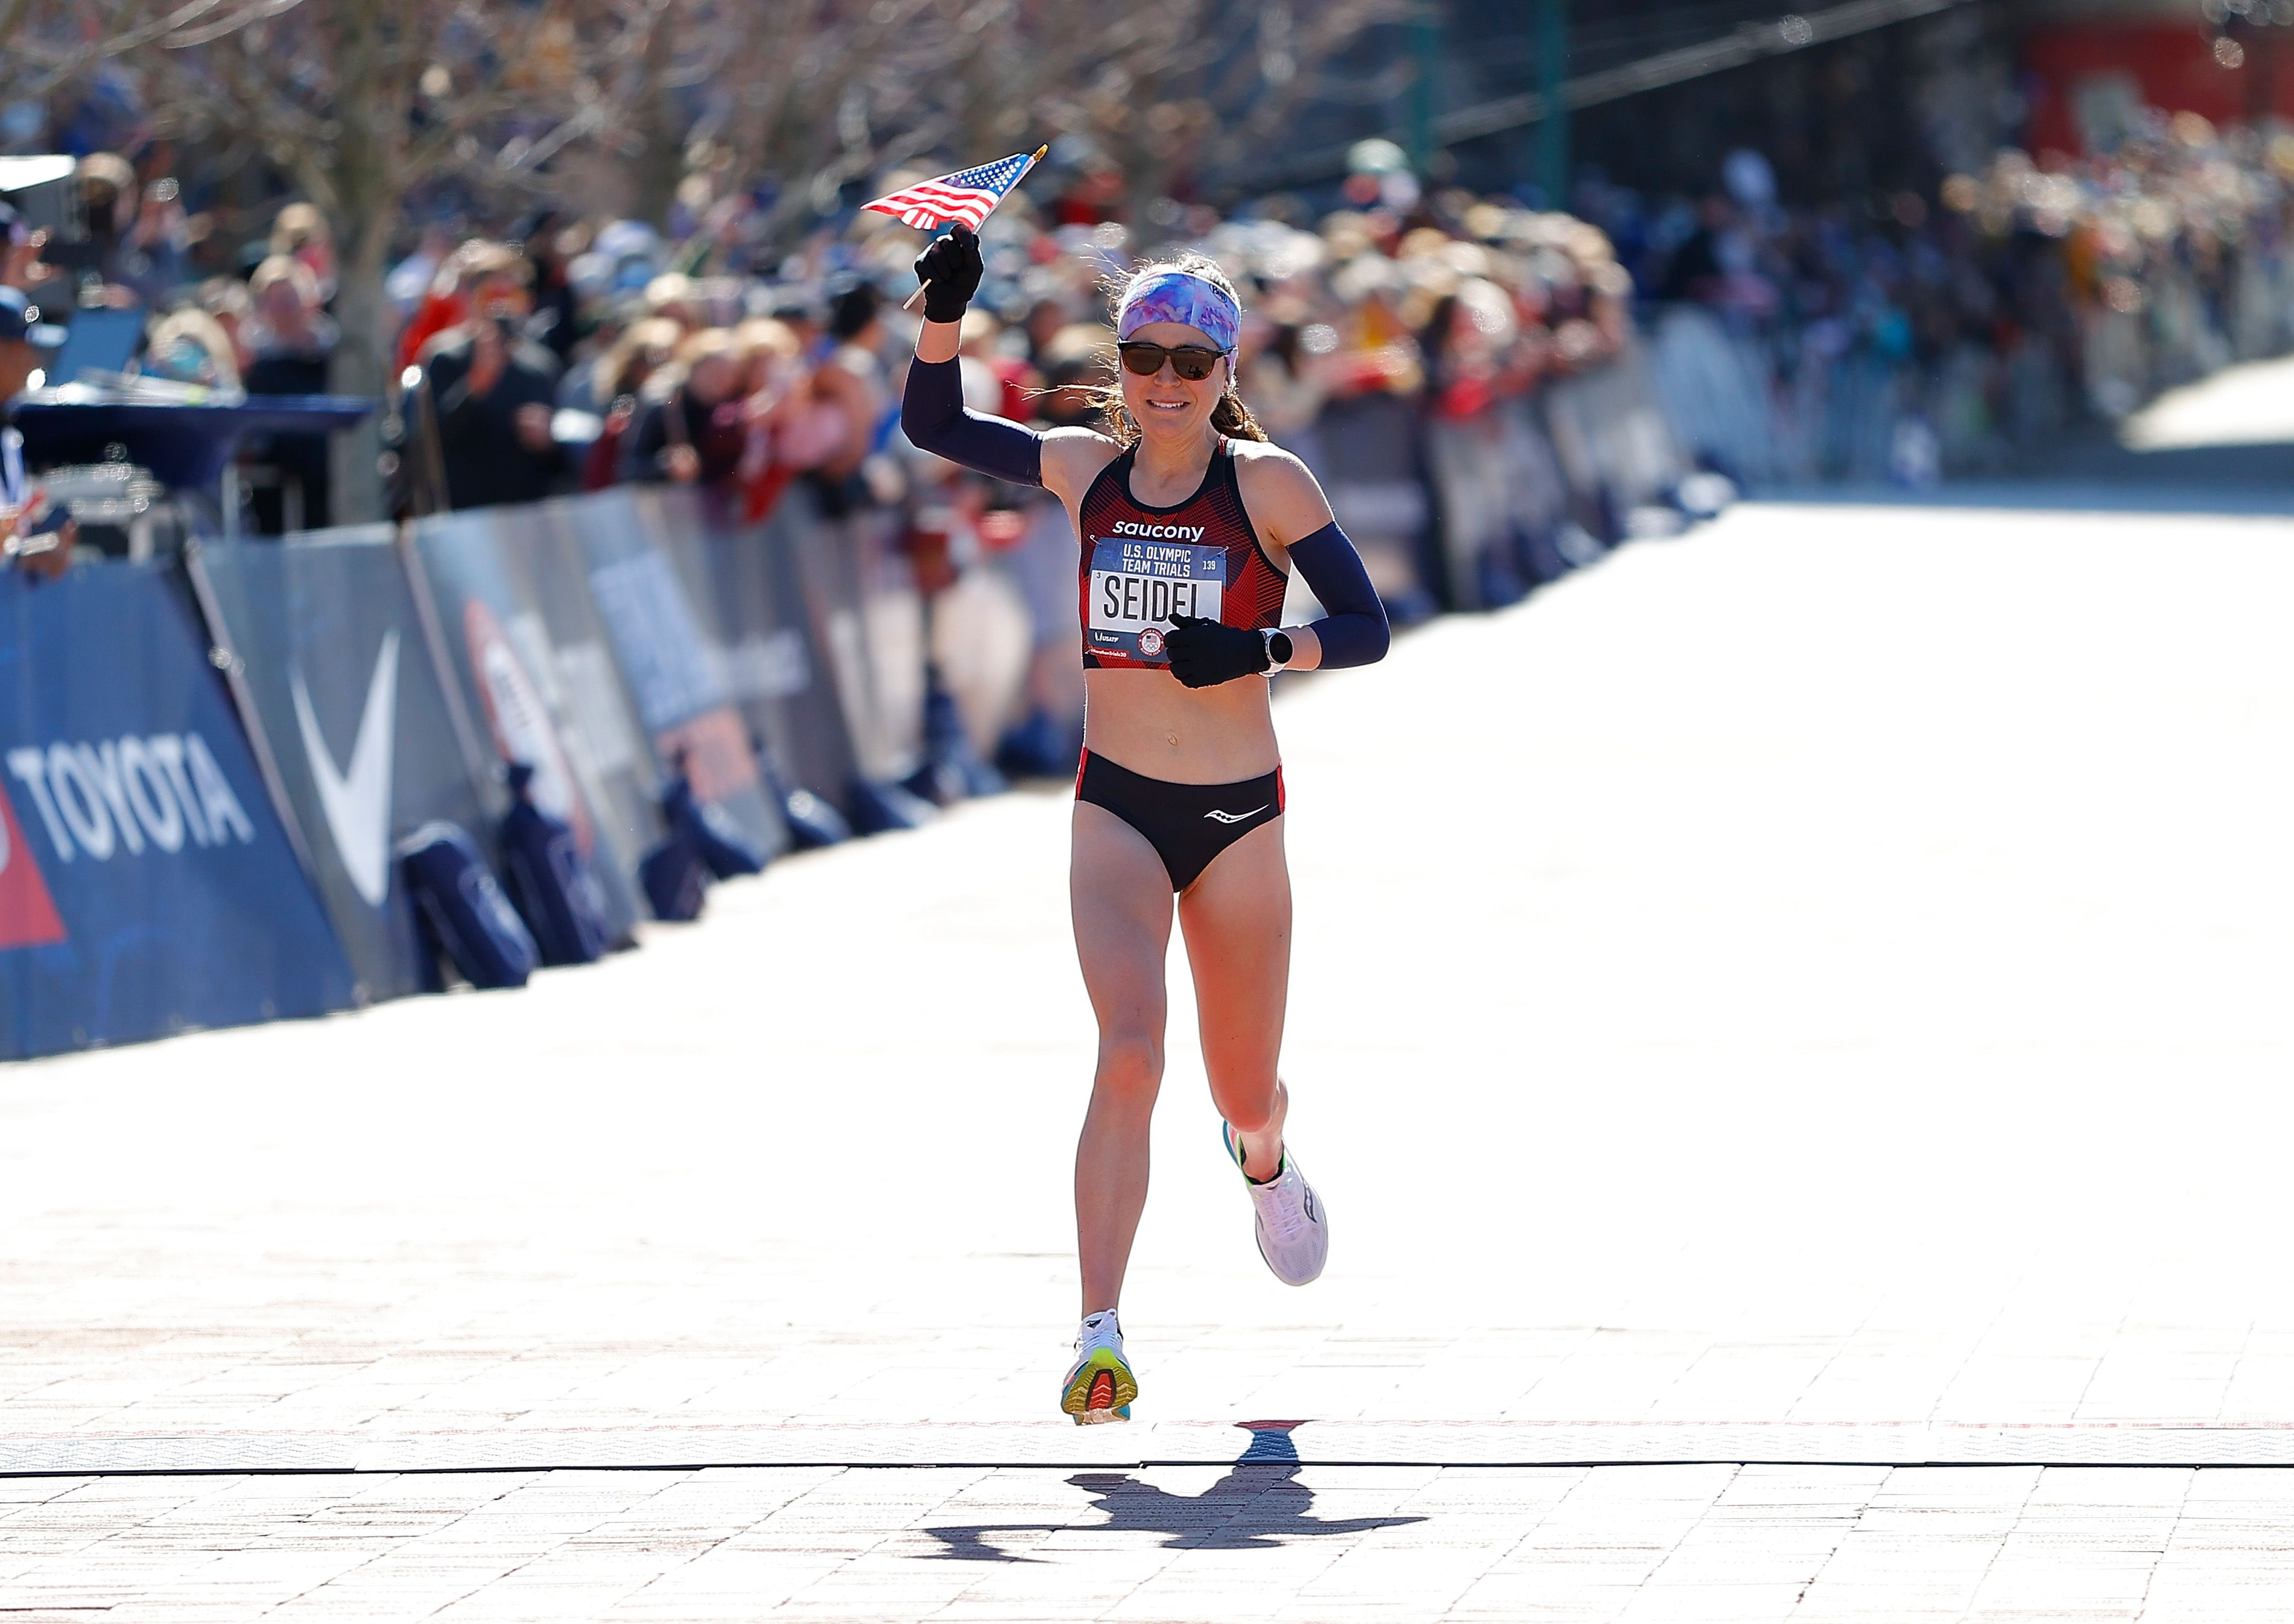 How Molly Seidel Changed Her Fueling Mindset for Marathon Training